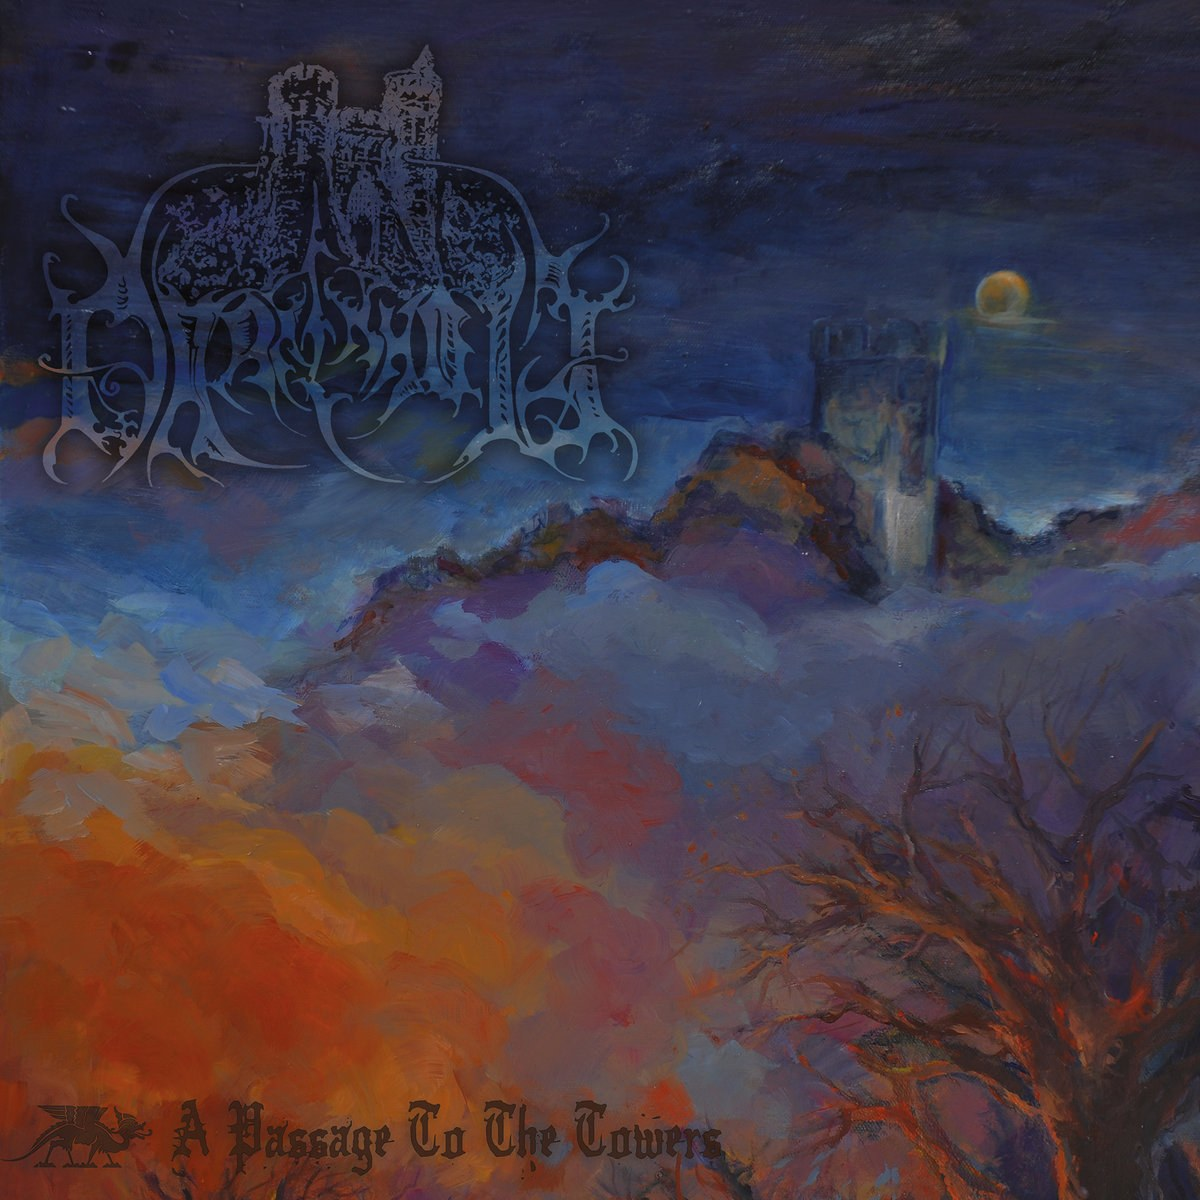 Review for Darkenhöld - A Passage to the Towers...